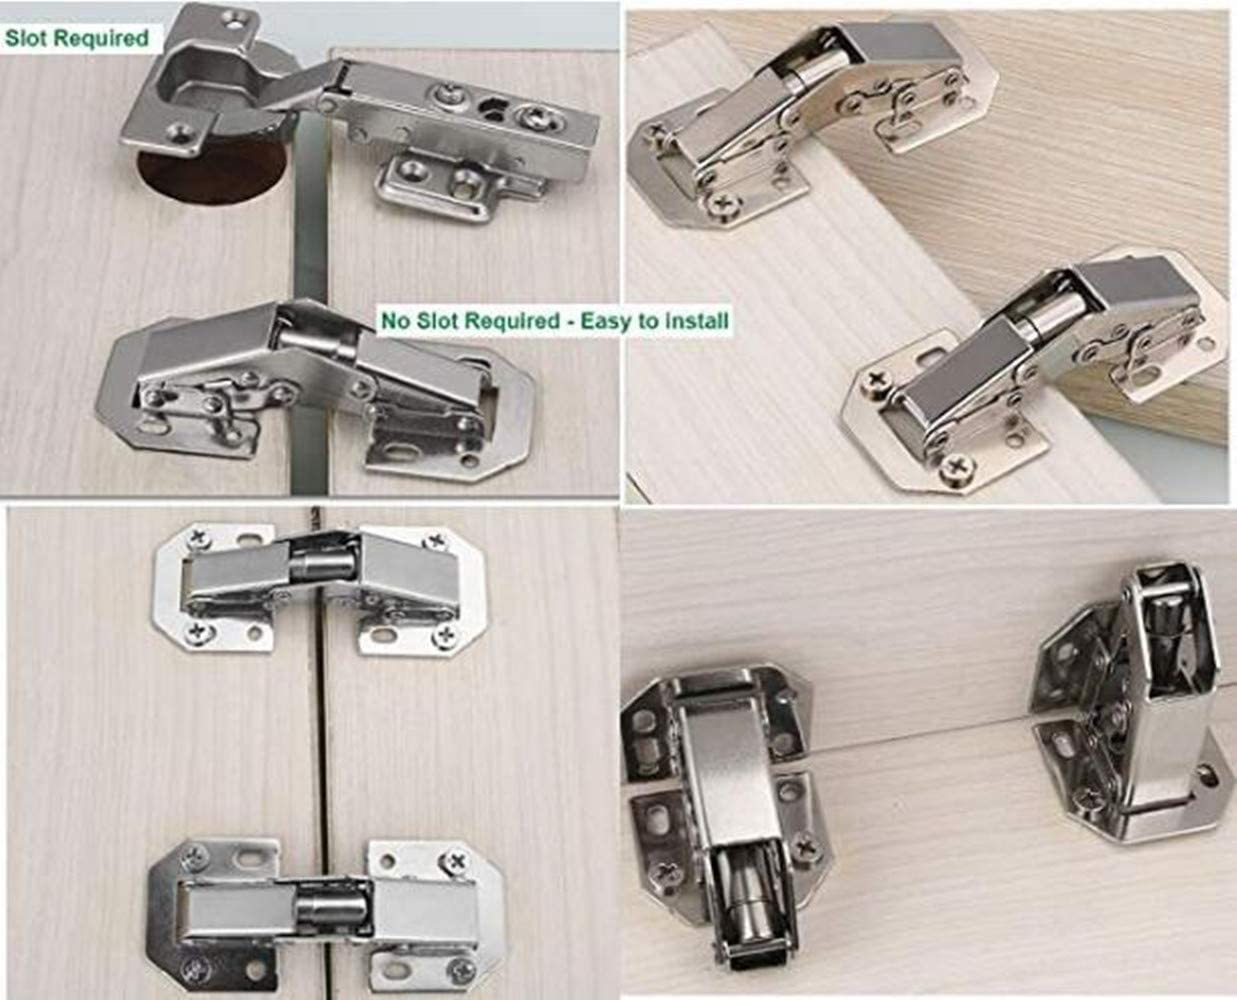 Cabinet Door Free Stop Support Hinge 2PCS 37x125mm Adjustable Mounting Degree Concealed Hinges for Door Wardrobe Cabinet